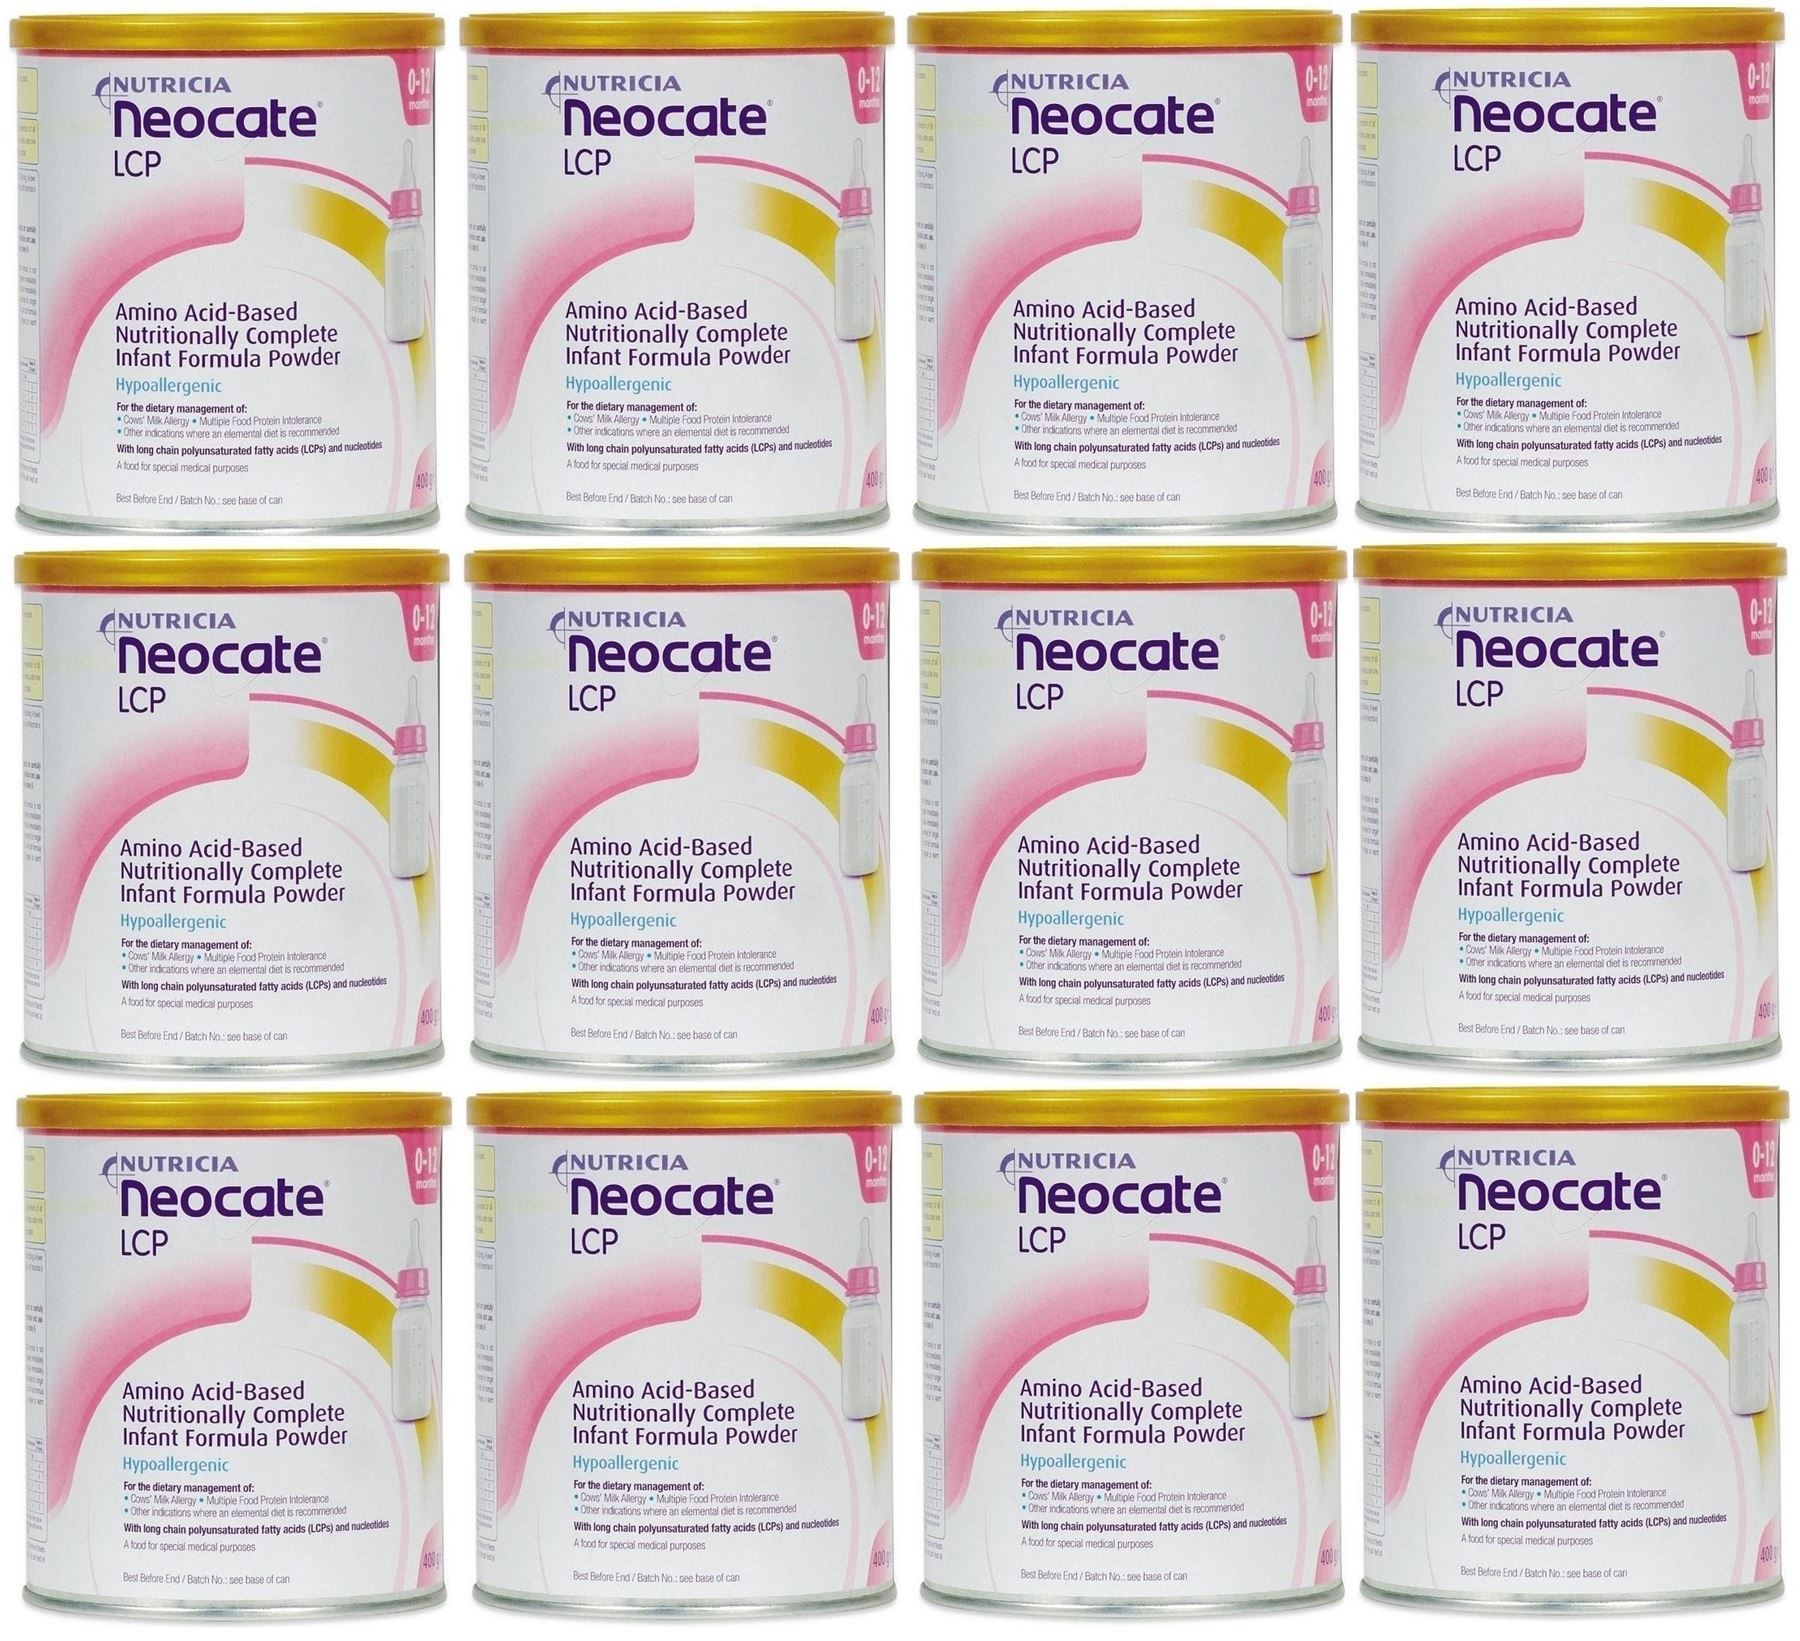 Details about Nutricia Neocate LCP 0-12 Infant 400g